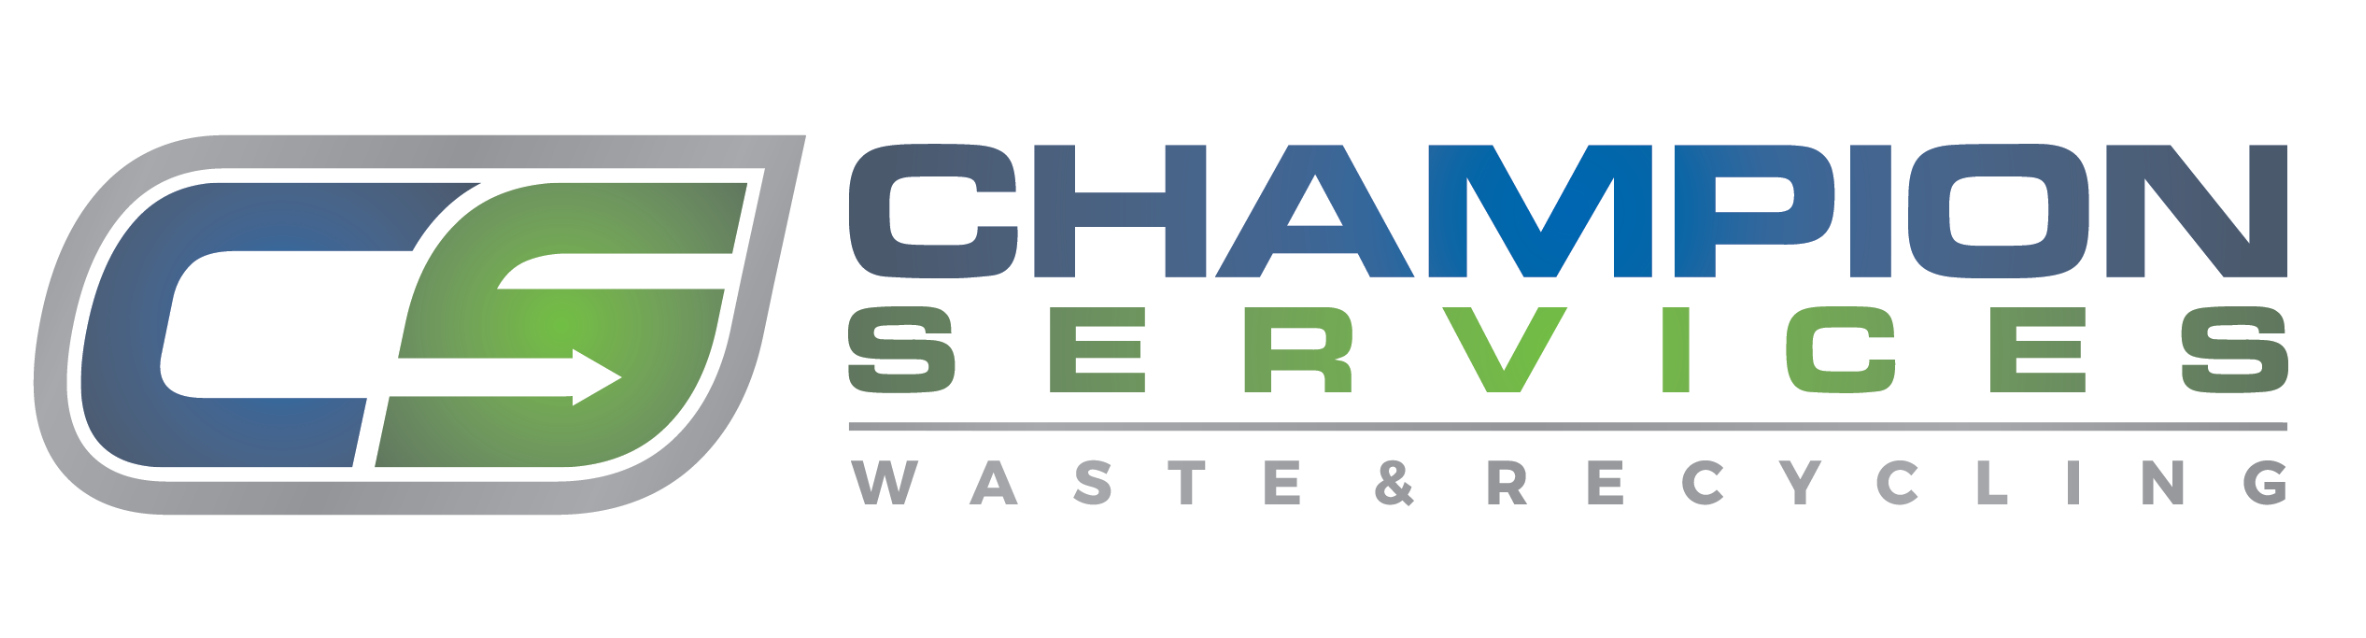 Champion Services Inc. | CSWaste